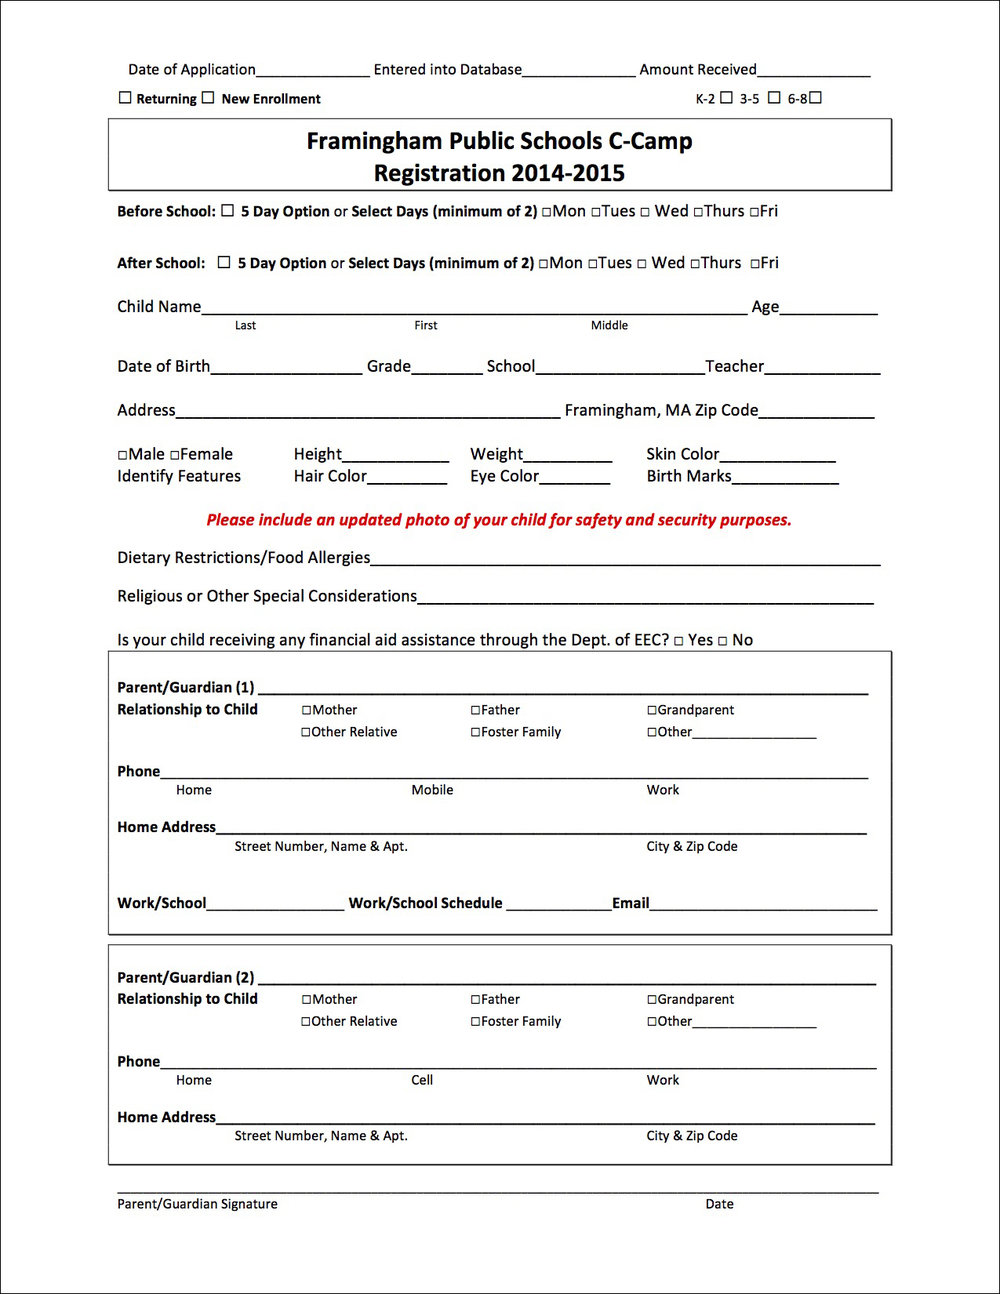 Registration Form – Before